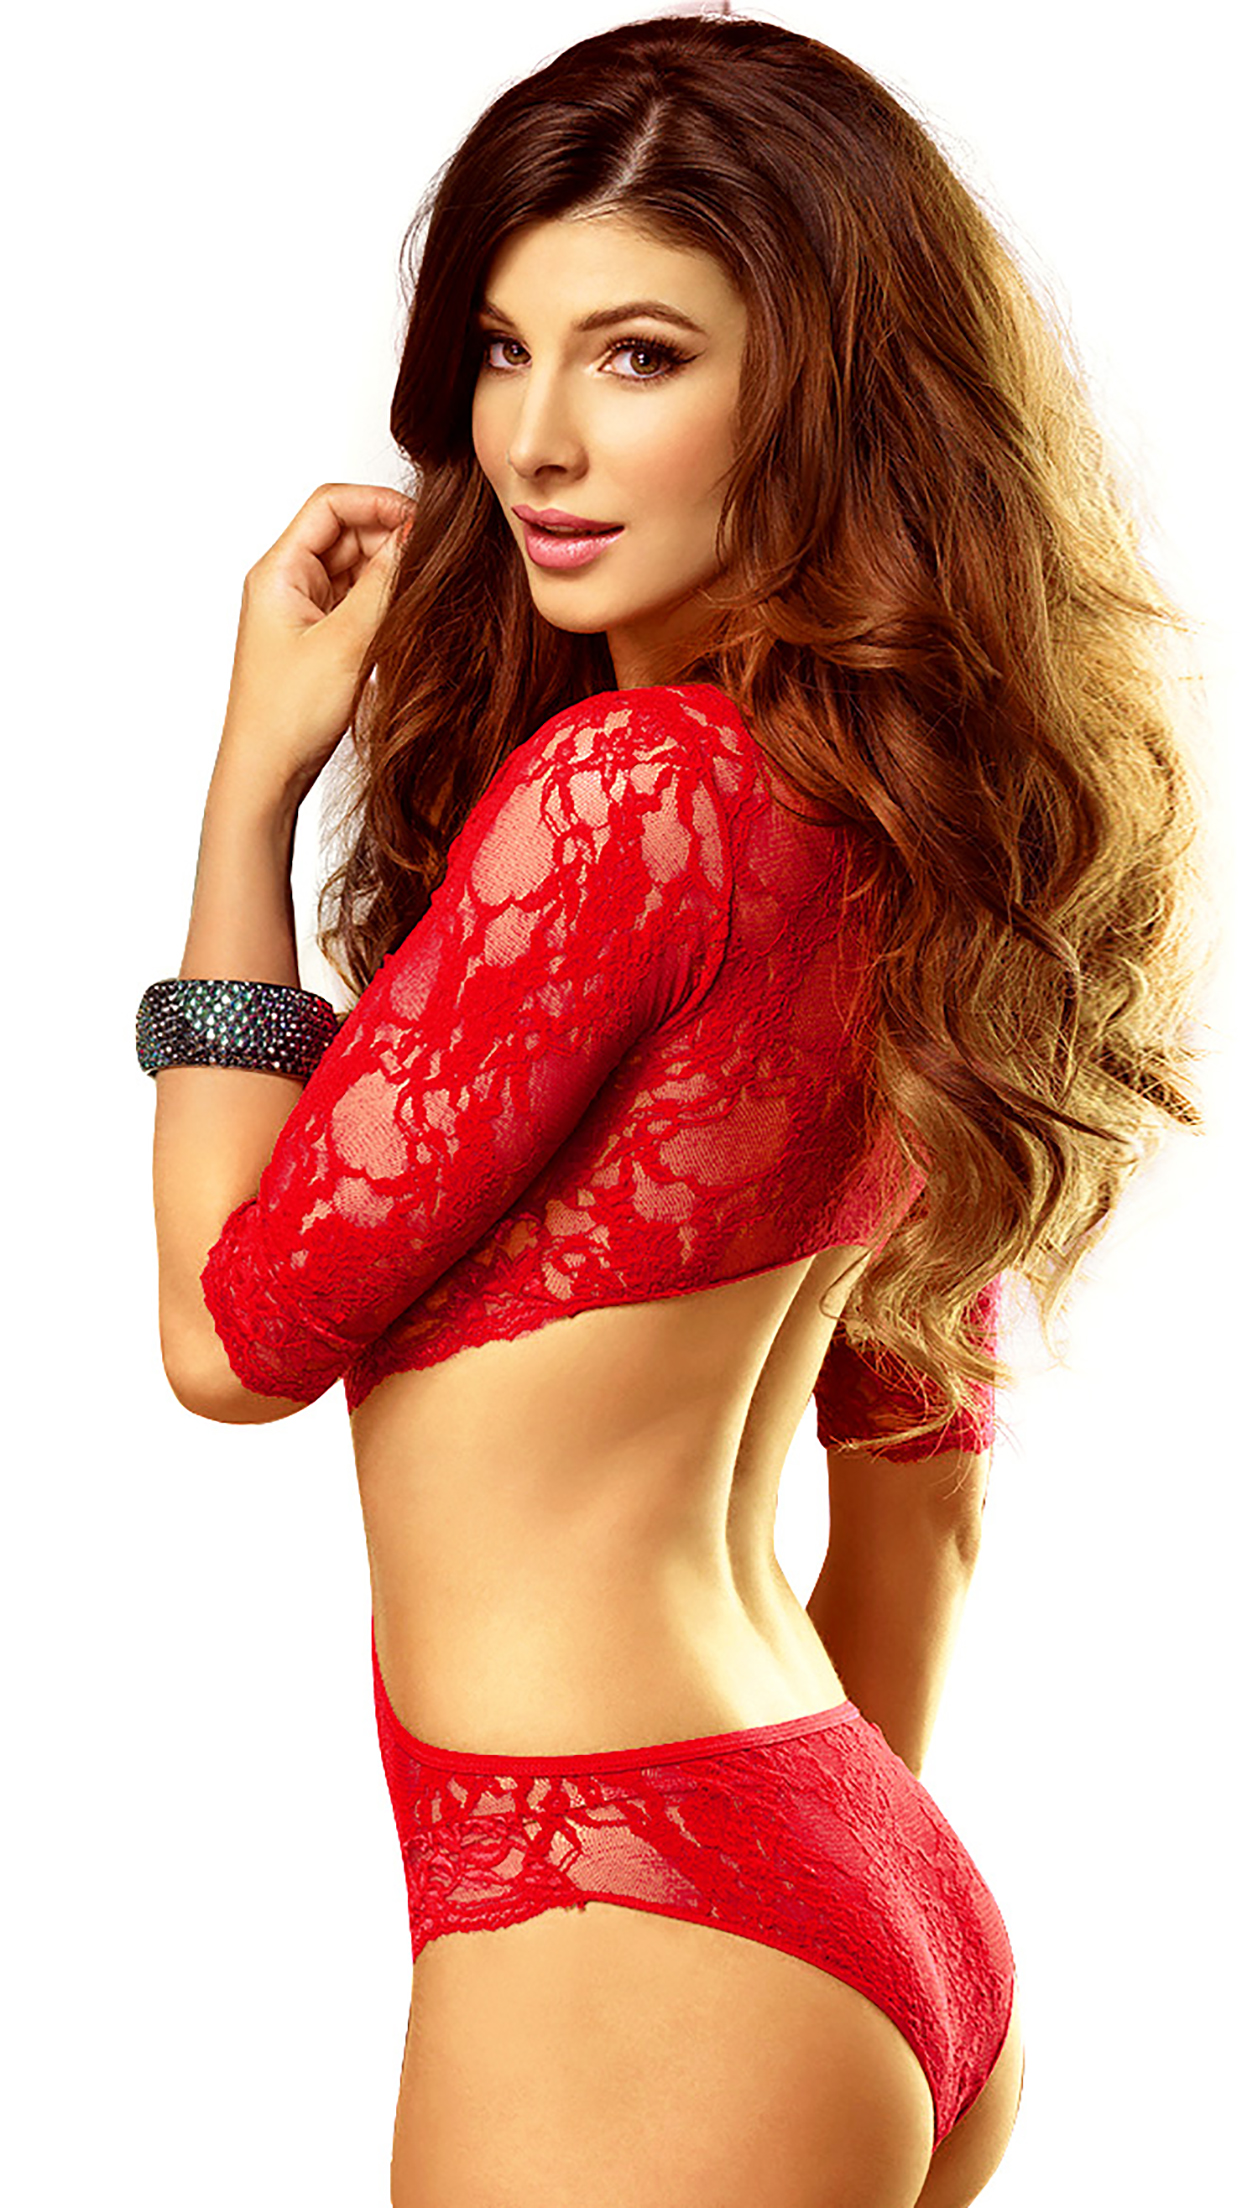 Iphone 7 Plus Christmas Wallpaper Sexy Girl In Red Wallpaper For Iphone X 8 7 6 Free